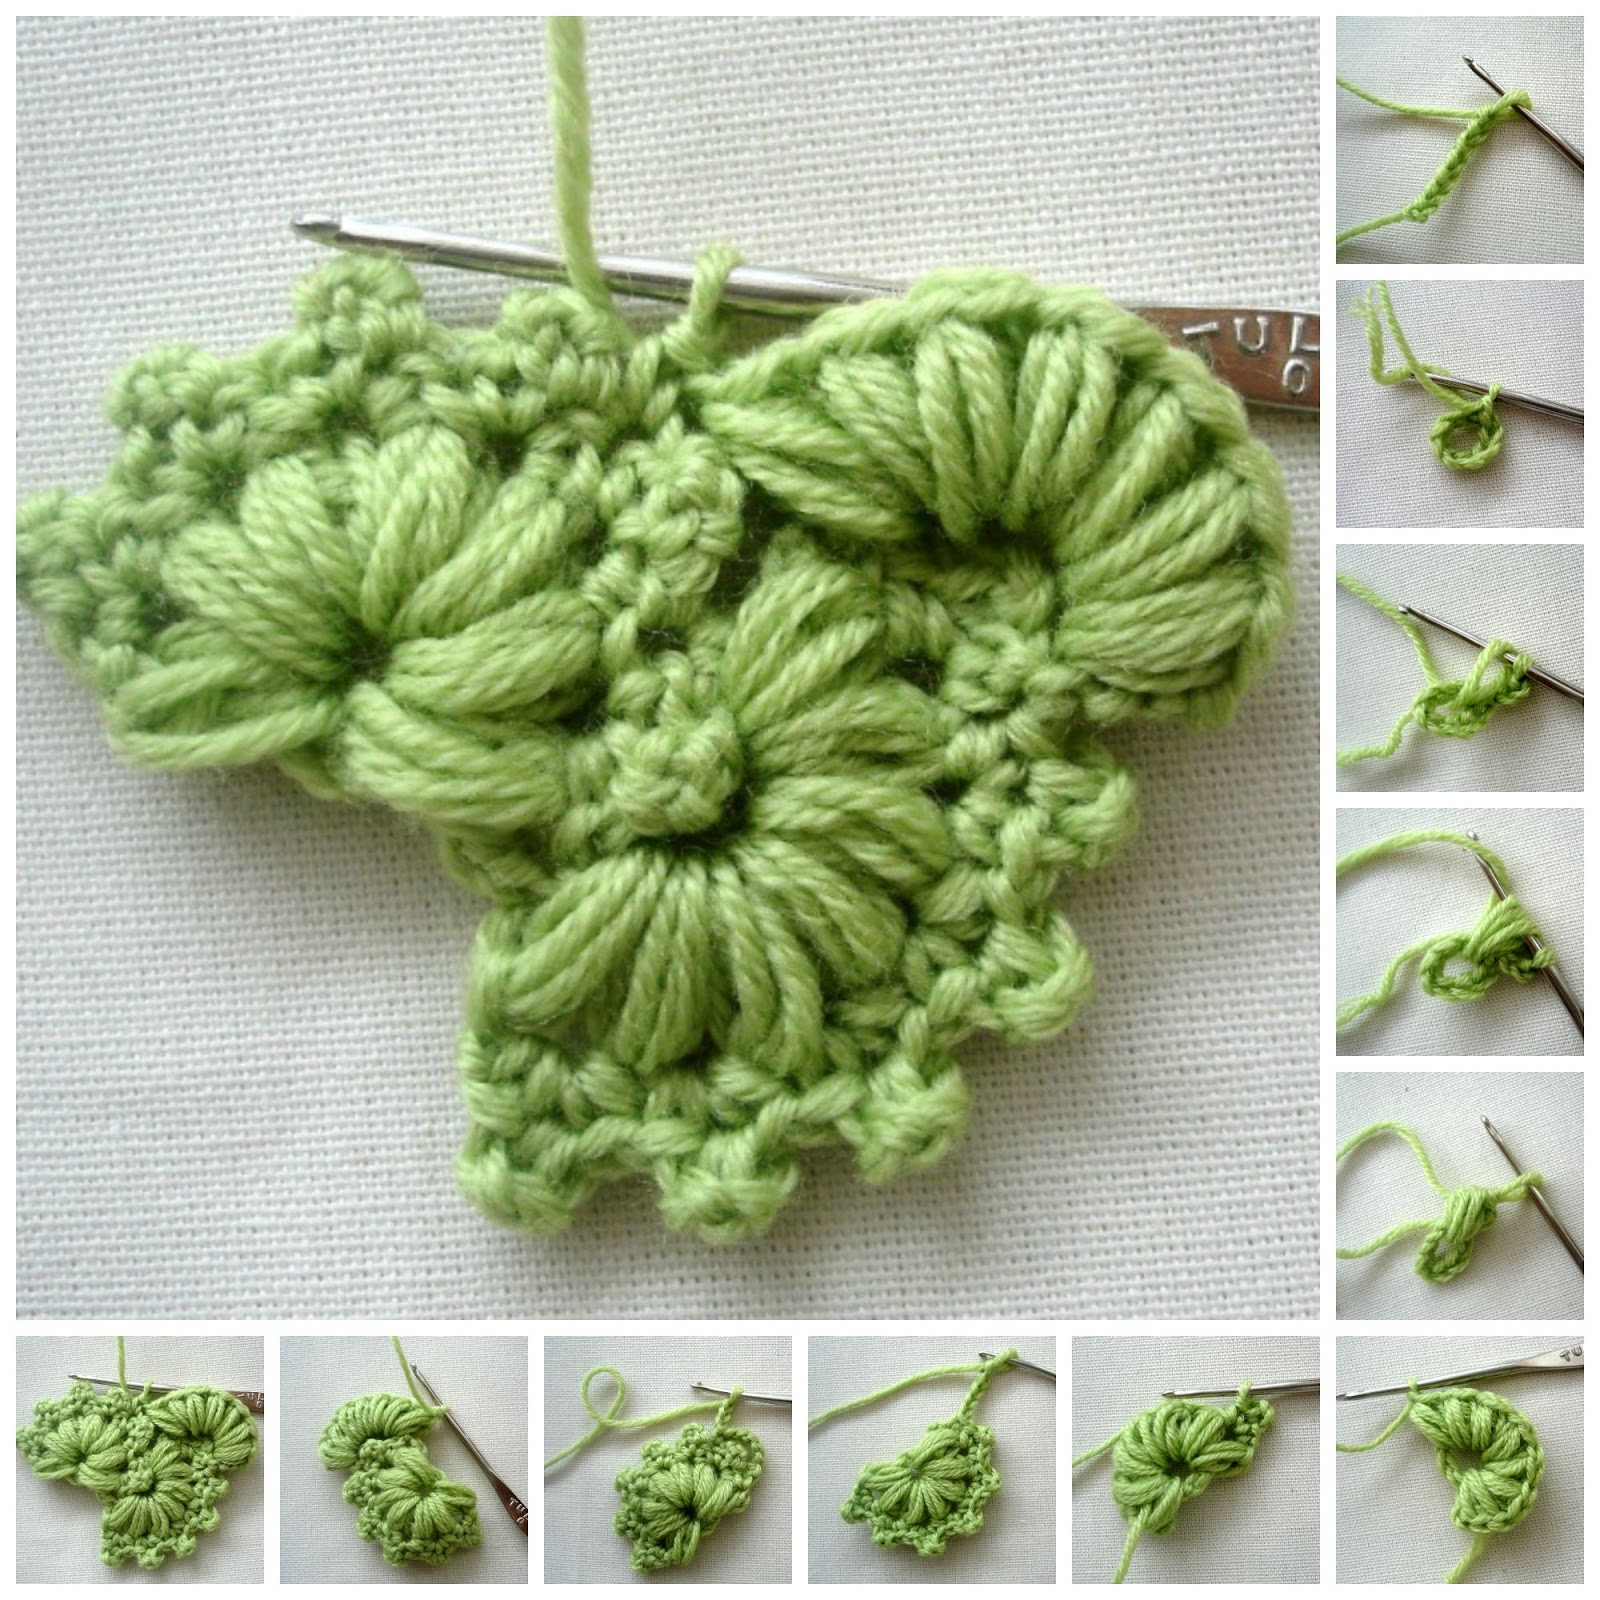 Crochet Patterns Step By Step : ergahandmade: Crochet Stitch + Free Pattern Step By Step